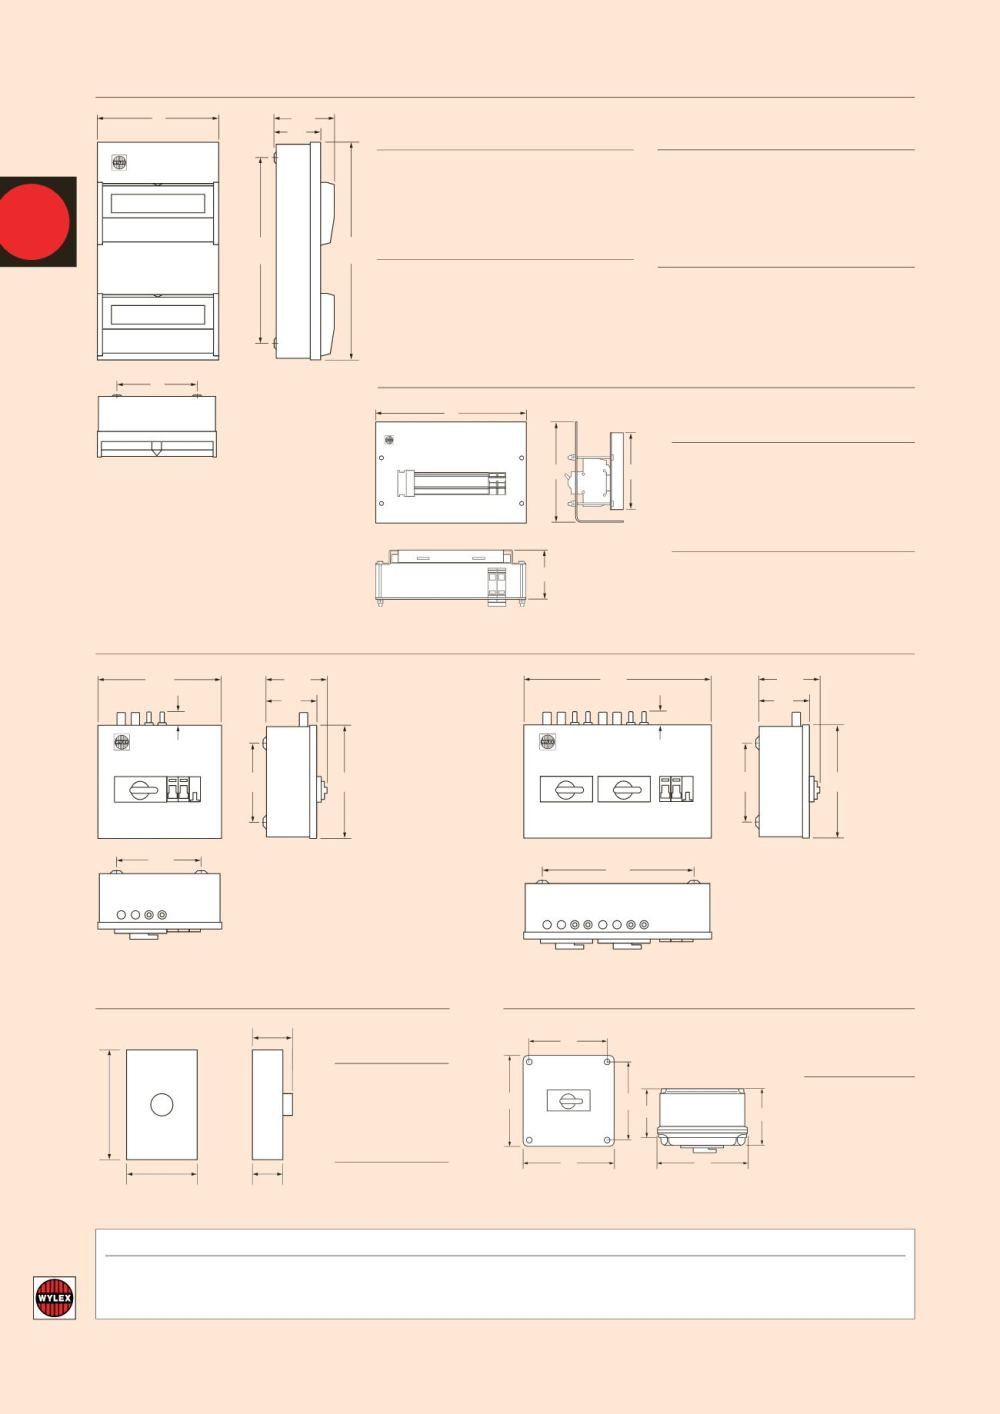 medium resolution of wylex consumer unit wiring diagram